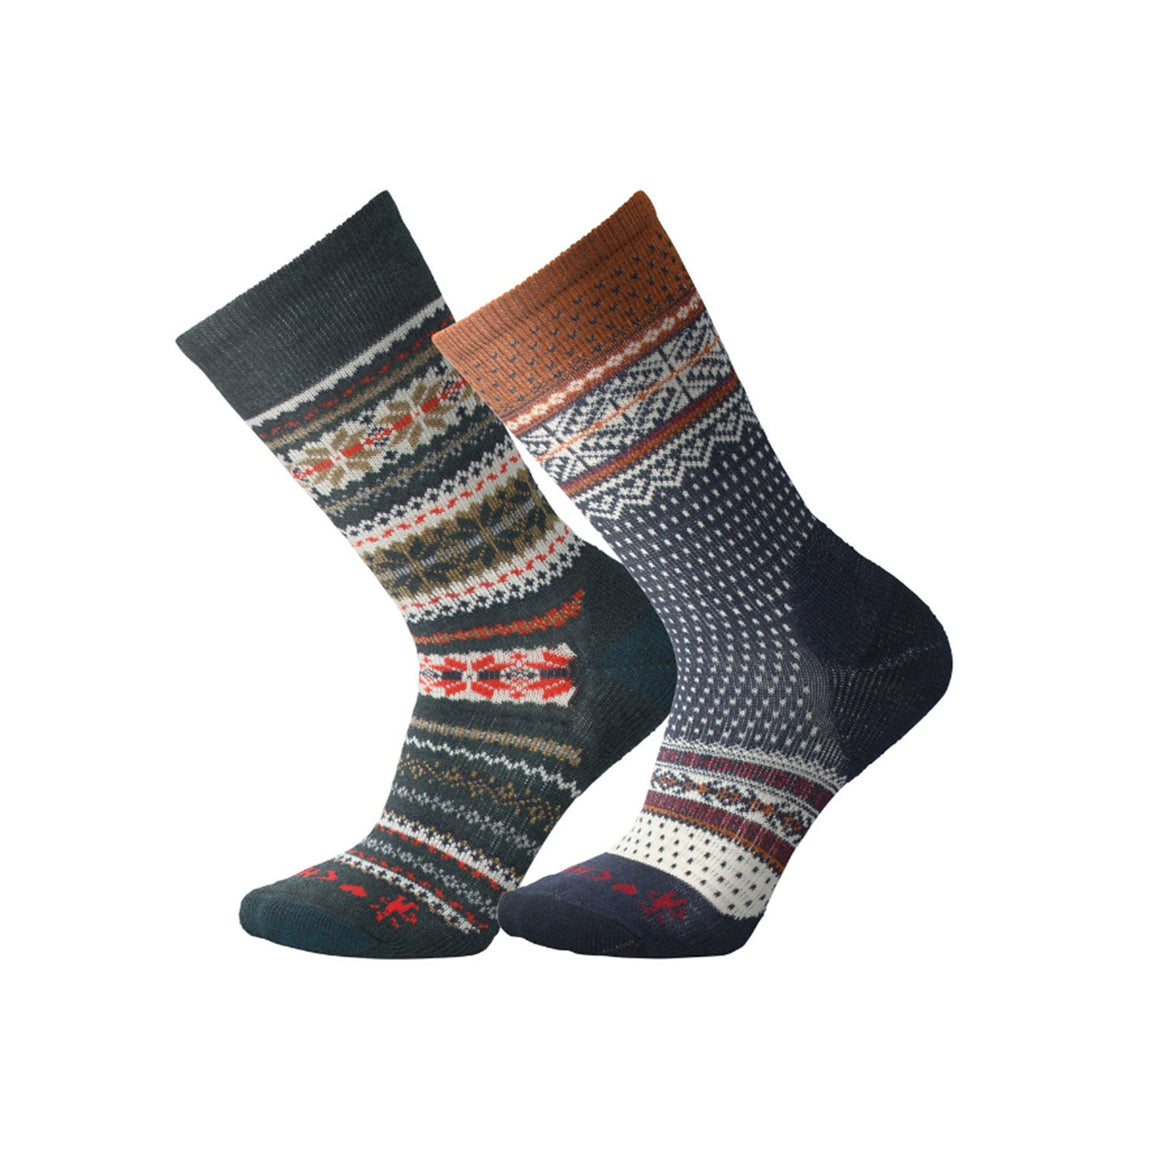 Smartwool Chup 2-Pack - Men's